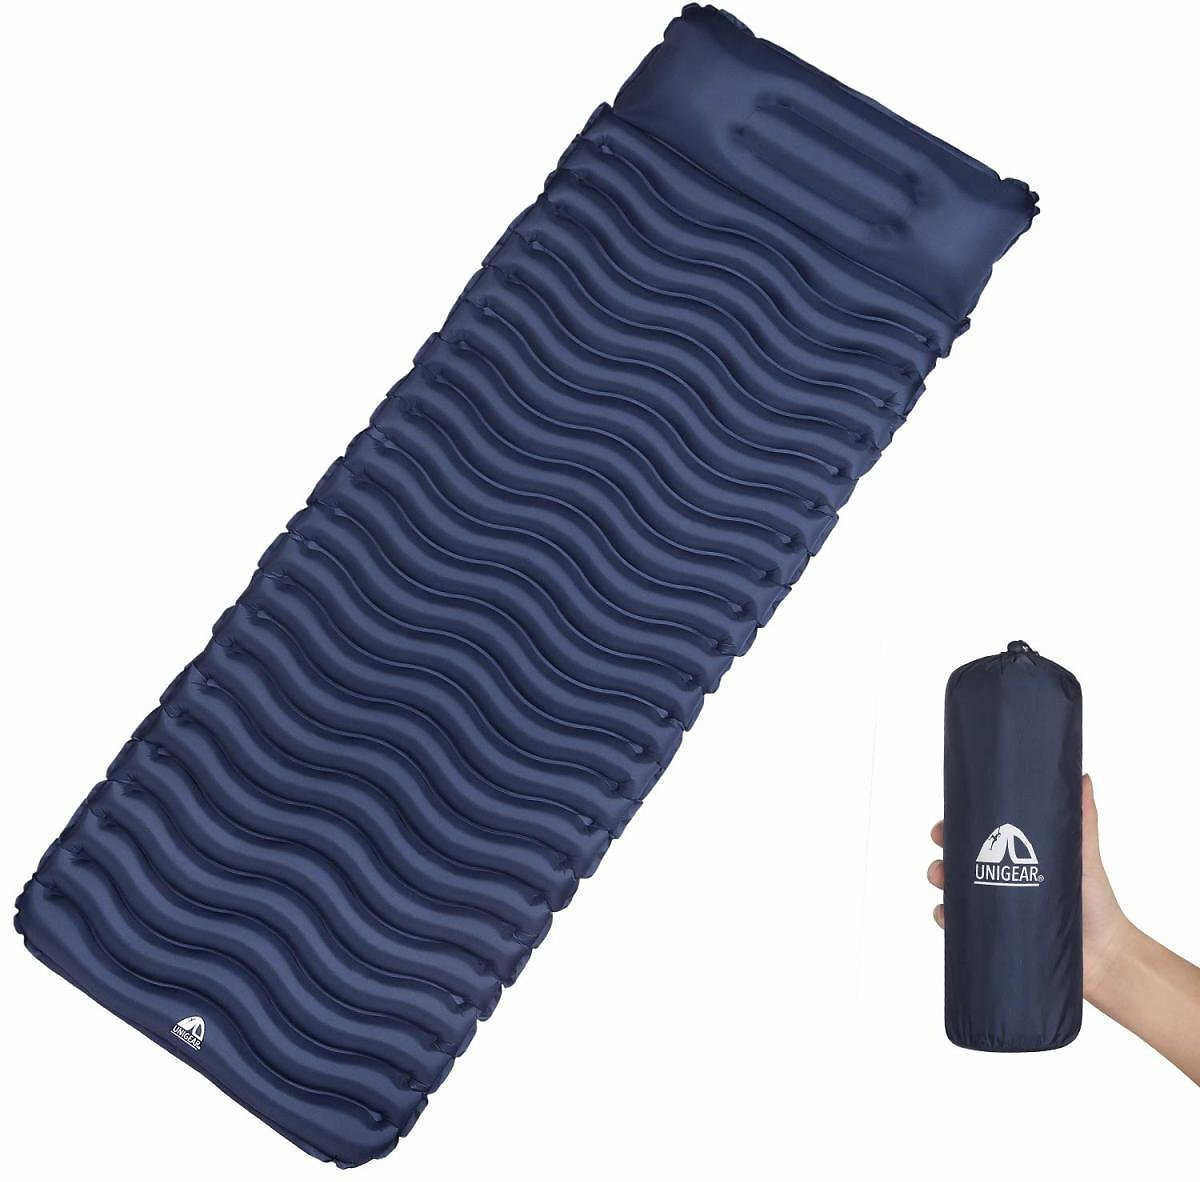 Unigear Inflatable Sleeping Air Pad, Compact Air Camping Mat, Ultralight Camping Mattress and Pillow for Backpacking, Hiking and Traveling